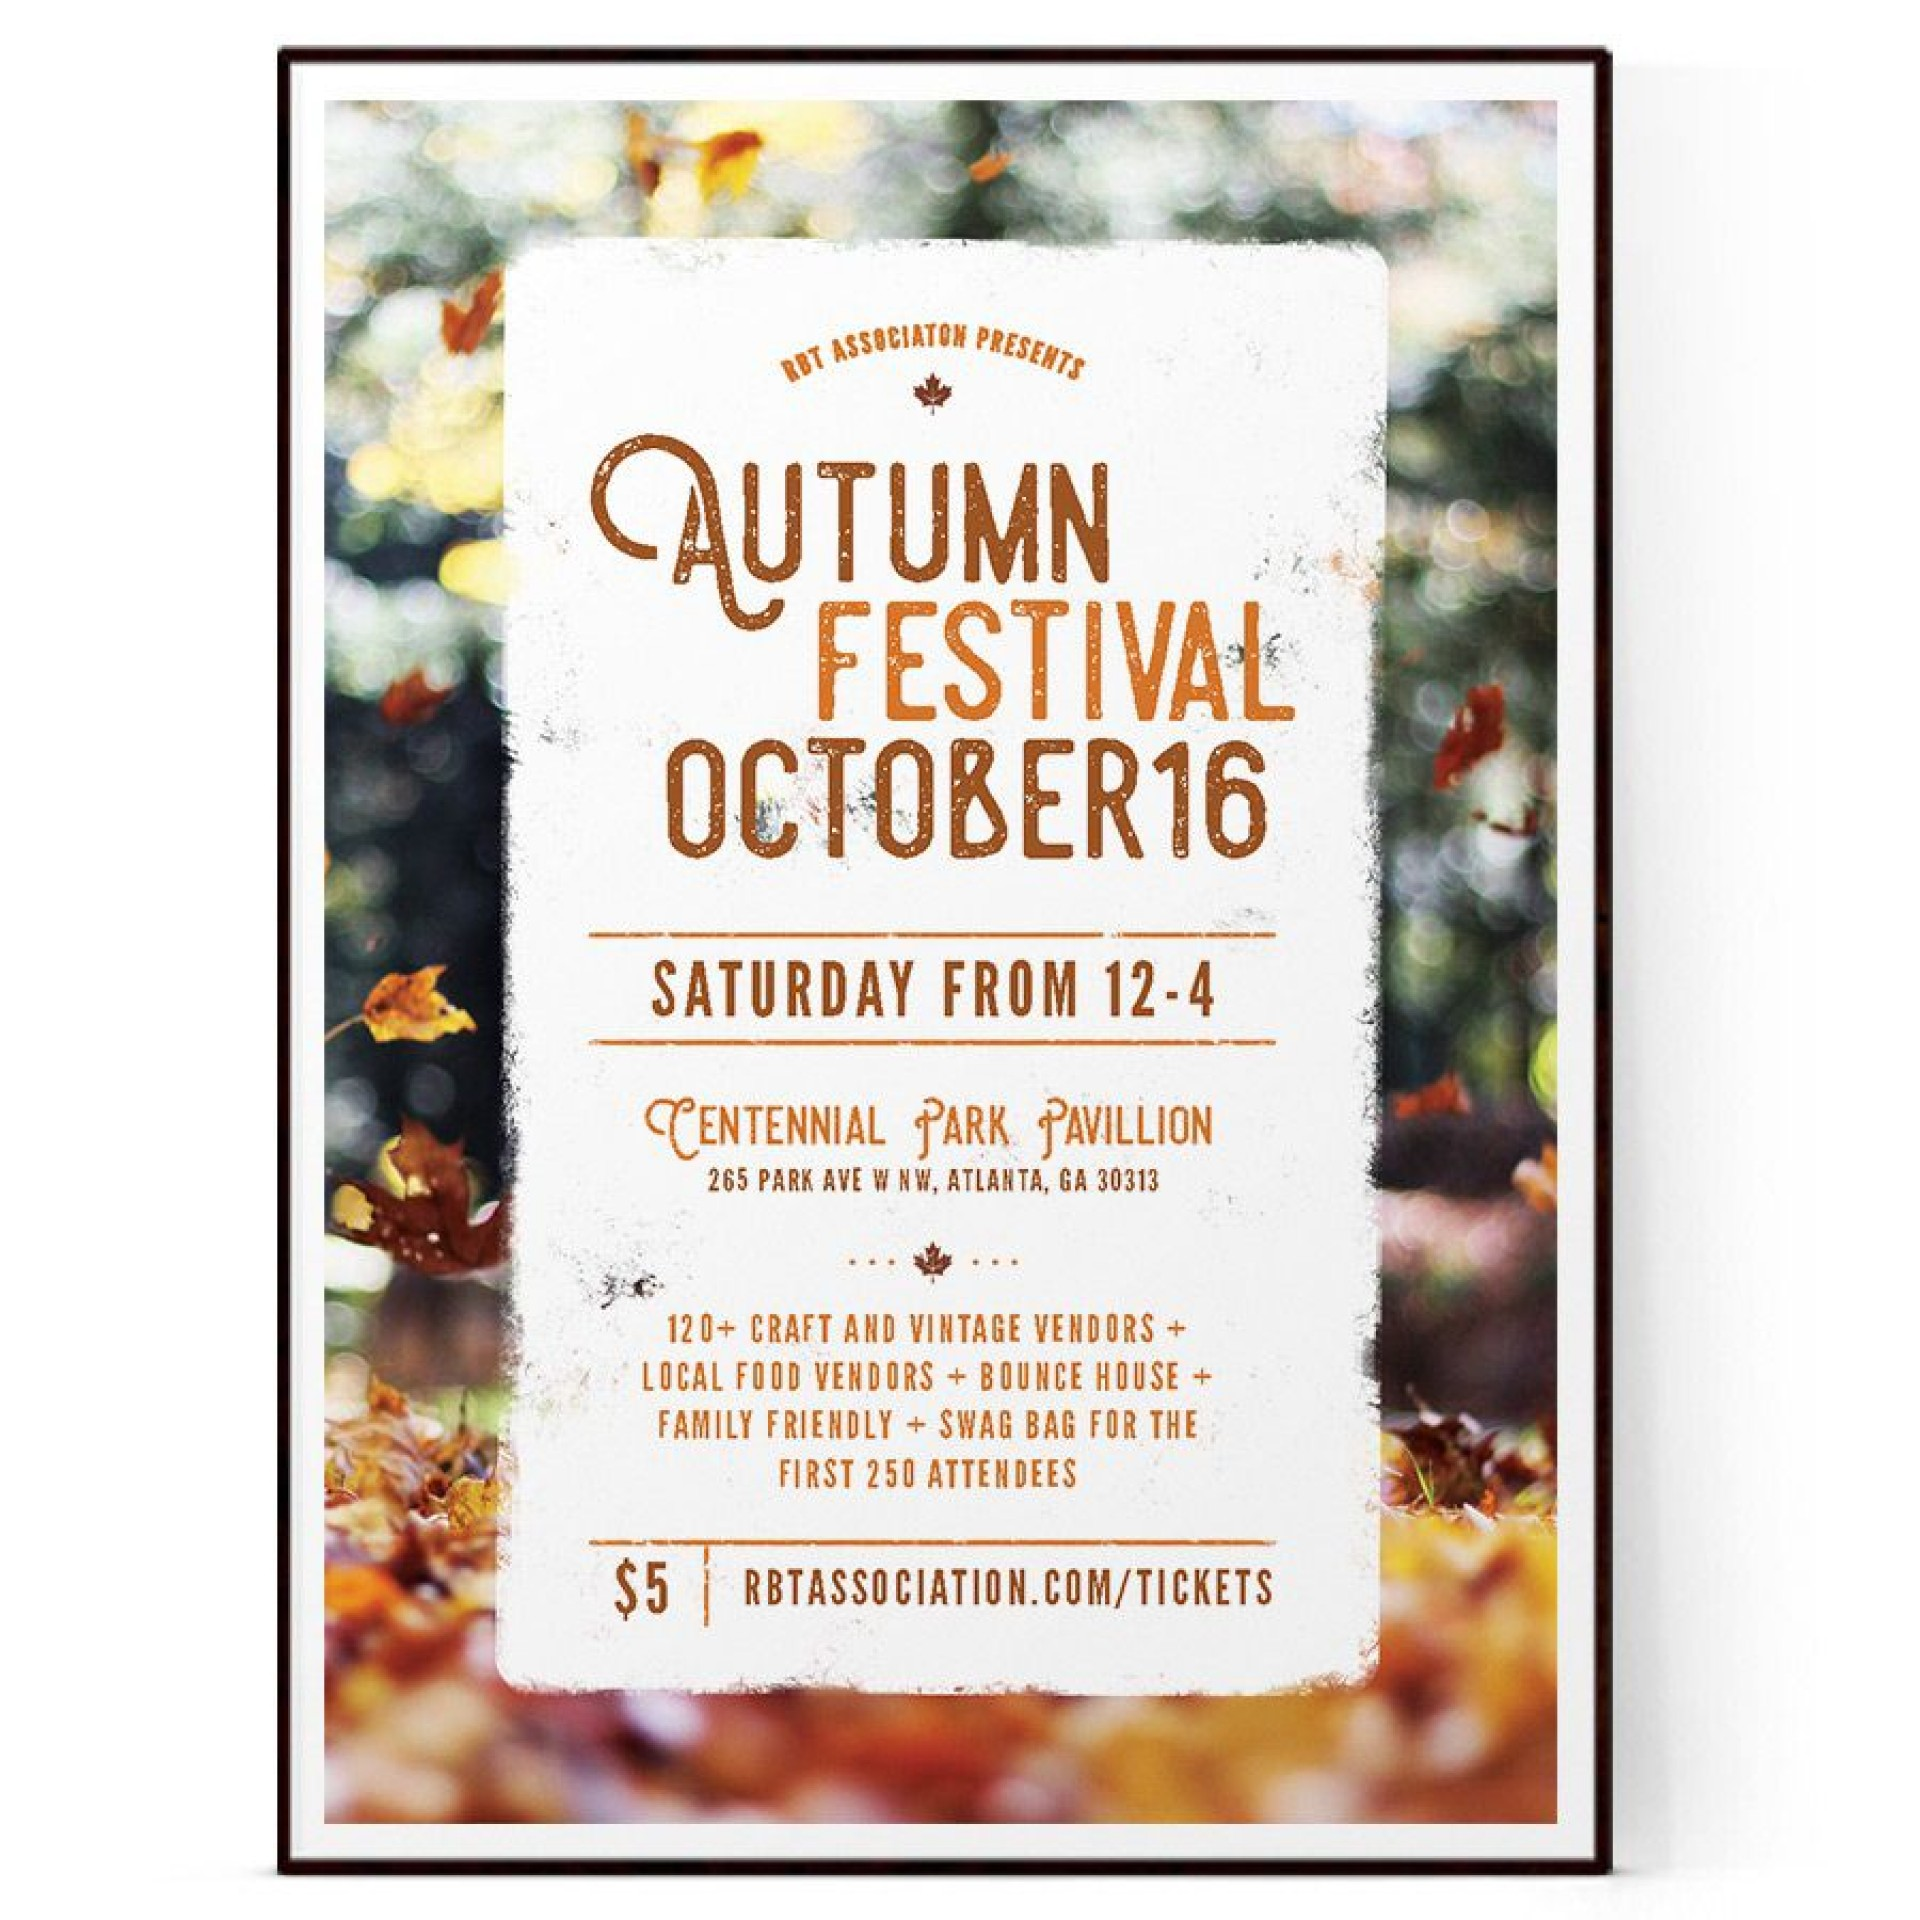 008 Frightening Fall Festival Flyer Template Picture  Free1920